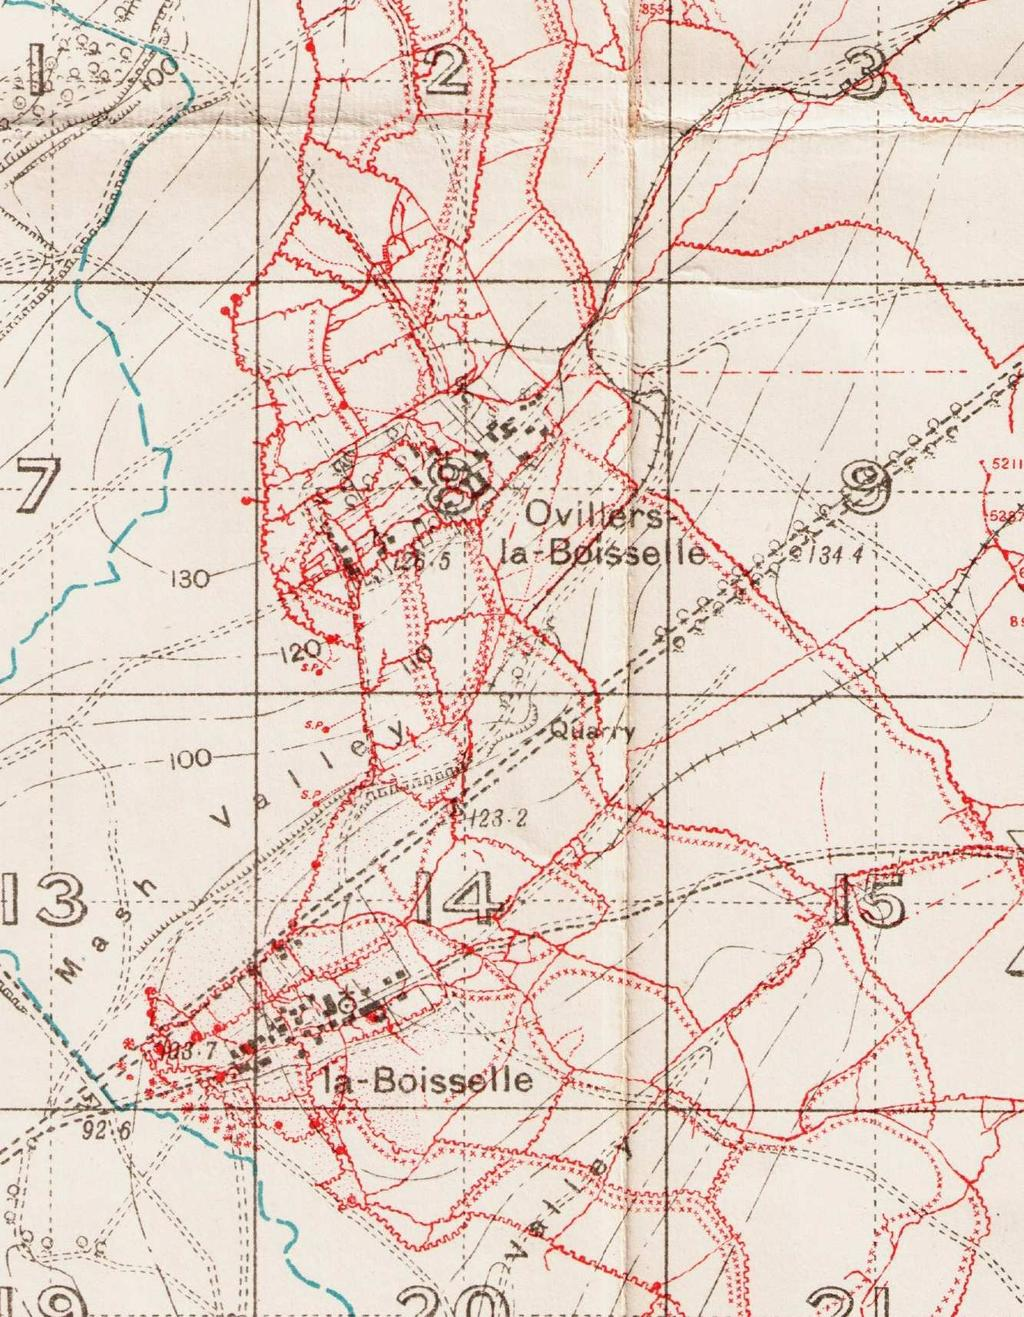 The Germans in the area of III Corps suffered very badly from the British bombardment. German numbers were whittled down. Communication became almost non-existent.